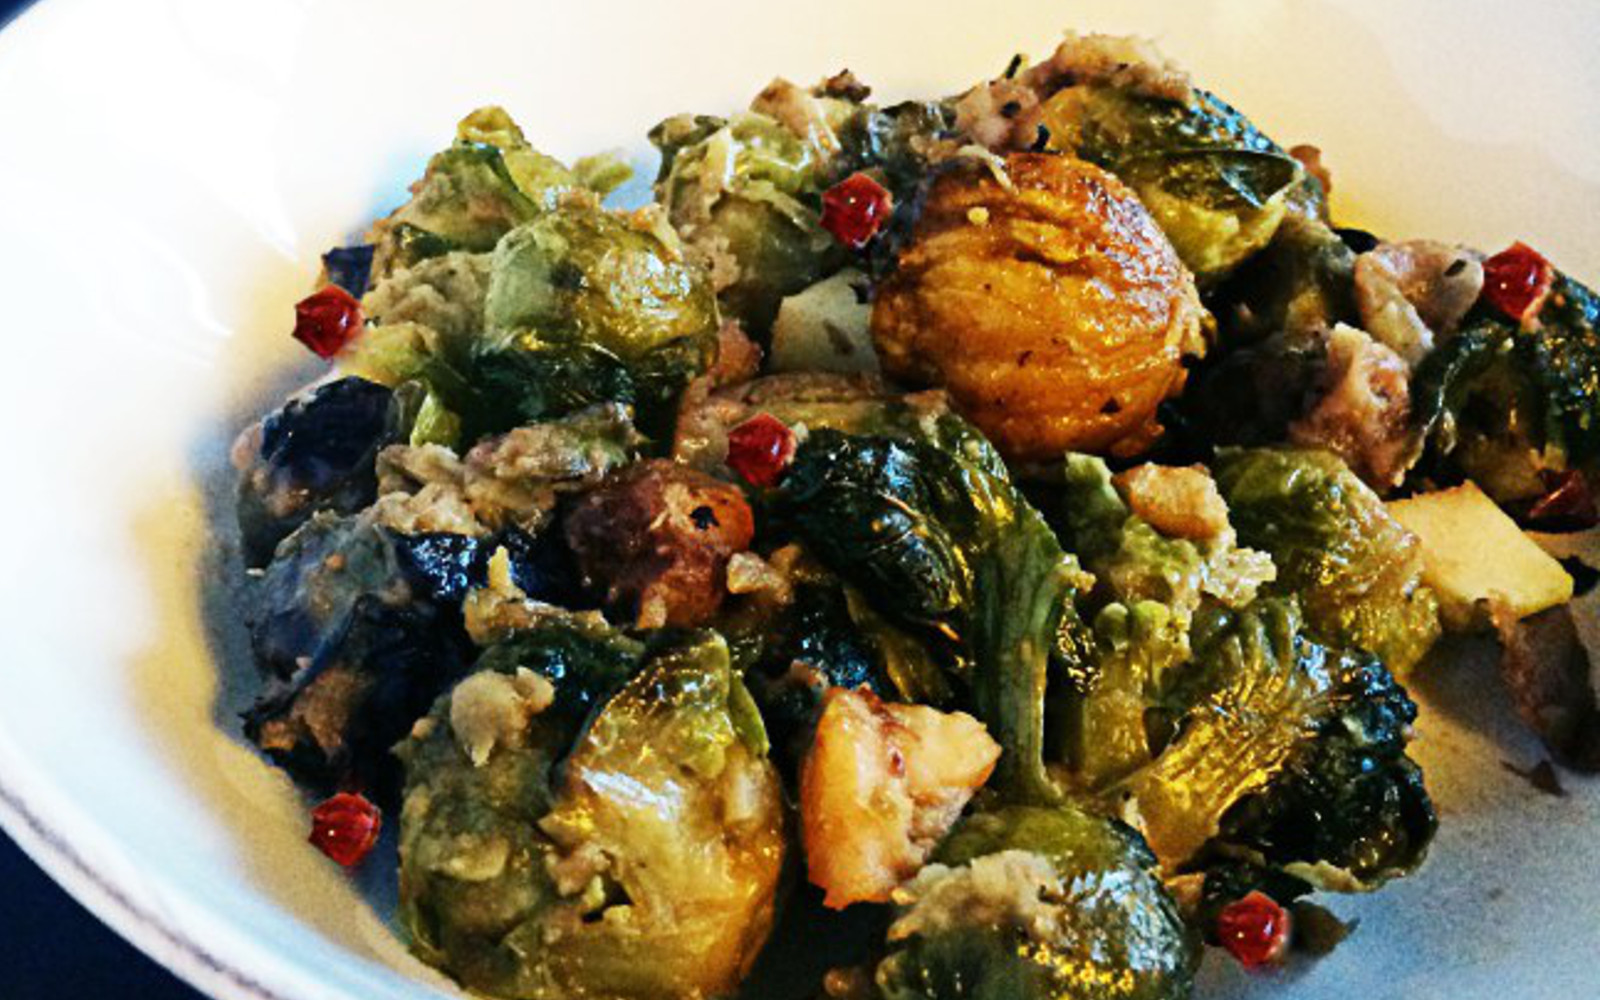 Roasted Brussels sprouts with apples and chestnuts